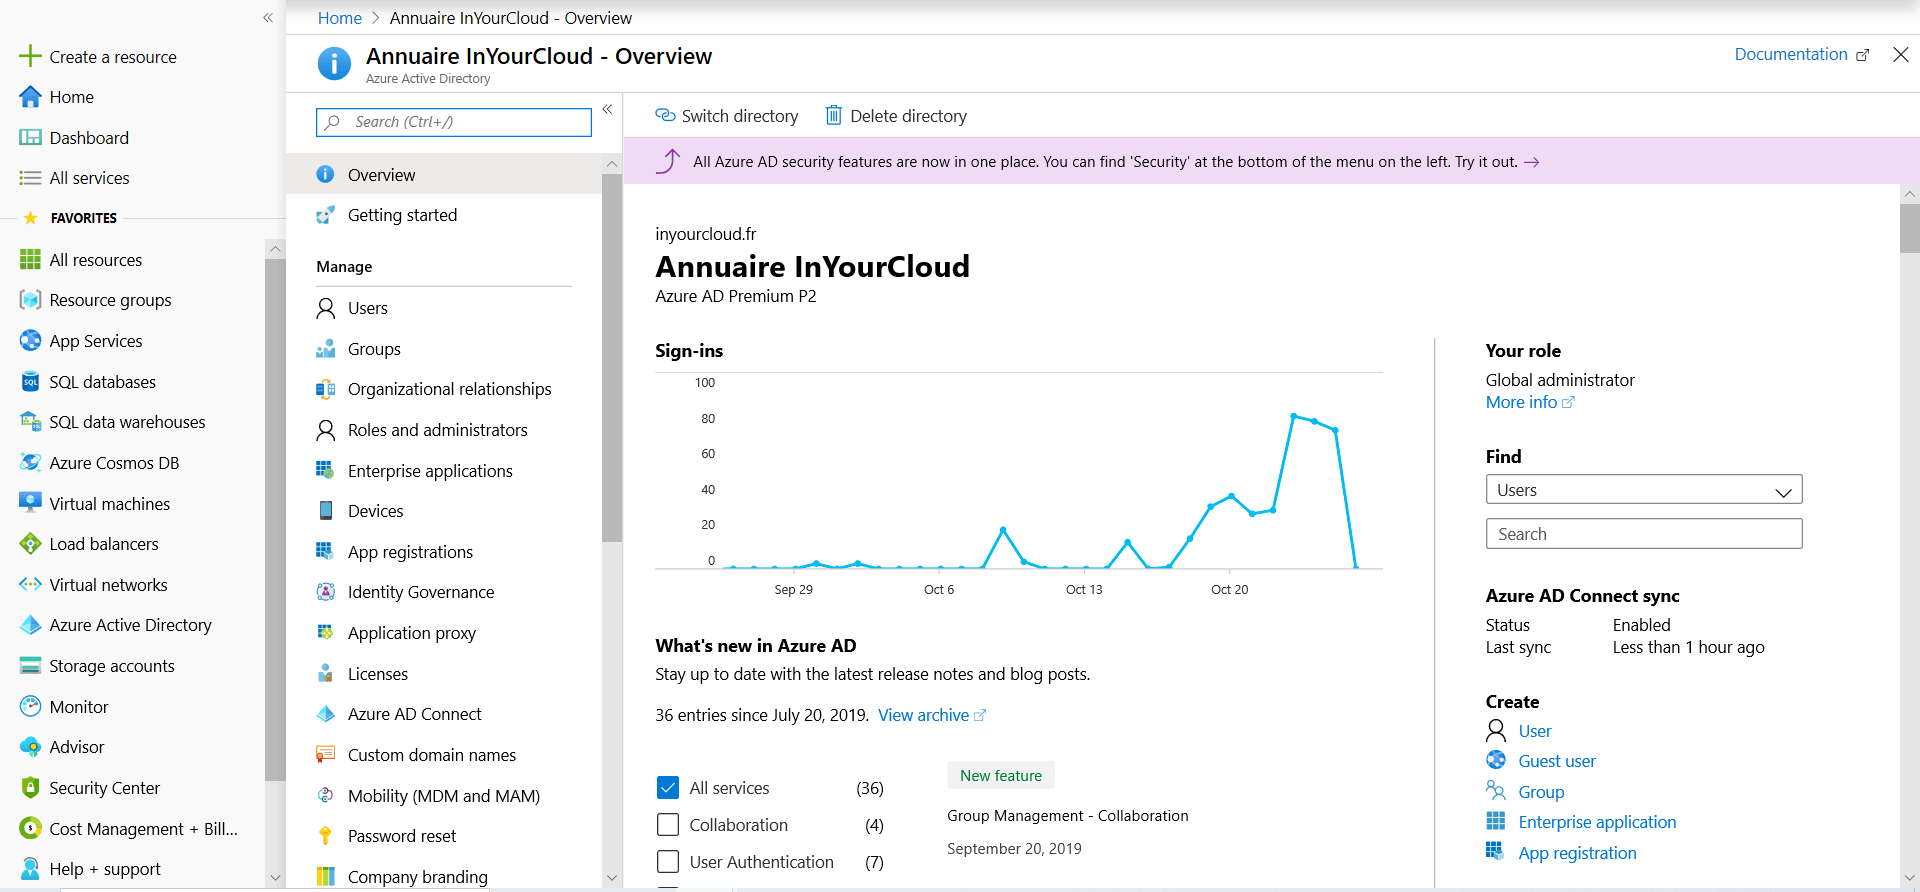 Access to Azure AD portal